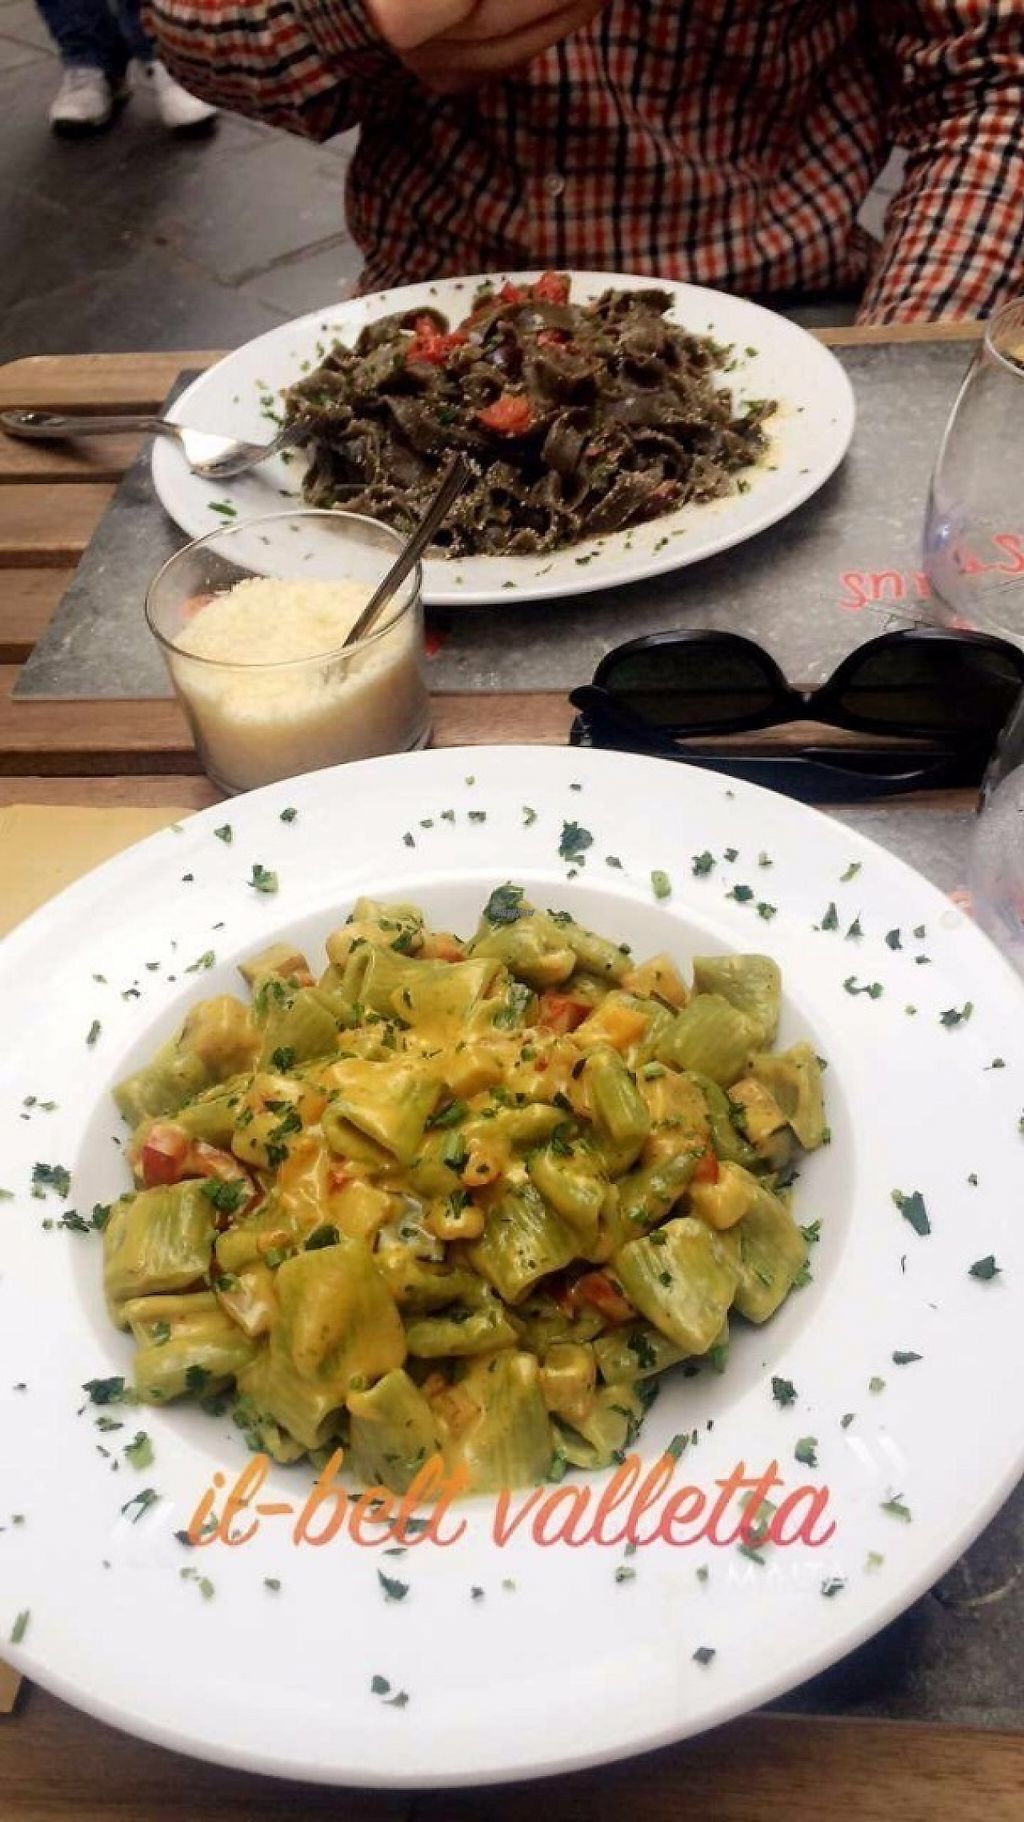 """Photo of Pastaus  by <a href=""""/members/profile/PlanetJanet"""">PlanetJanet</a> <br/>Pasta made from spinach with vegetal curry cream <br/> April 3, 2017  - <a href='/contact/abuse/image/89414/244442'>Report</a>"""